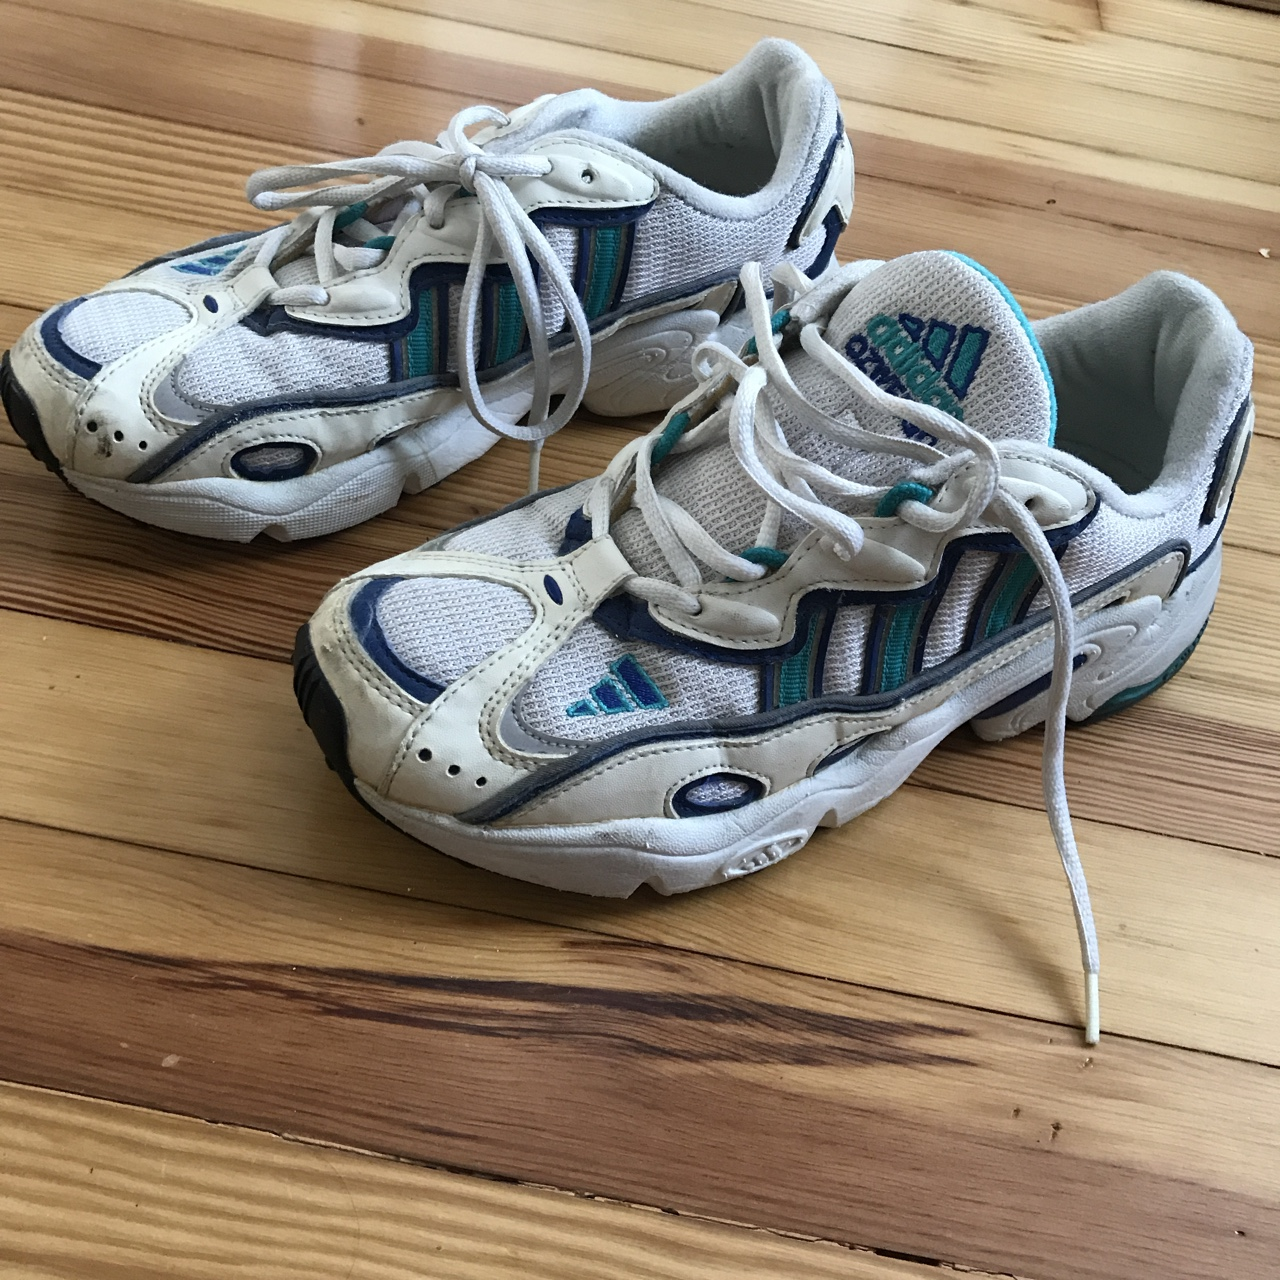 Vintage adidas ozweego Size 8 Great condition 06/98 - Depop